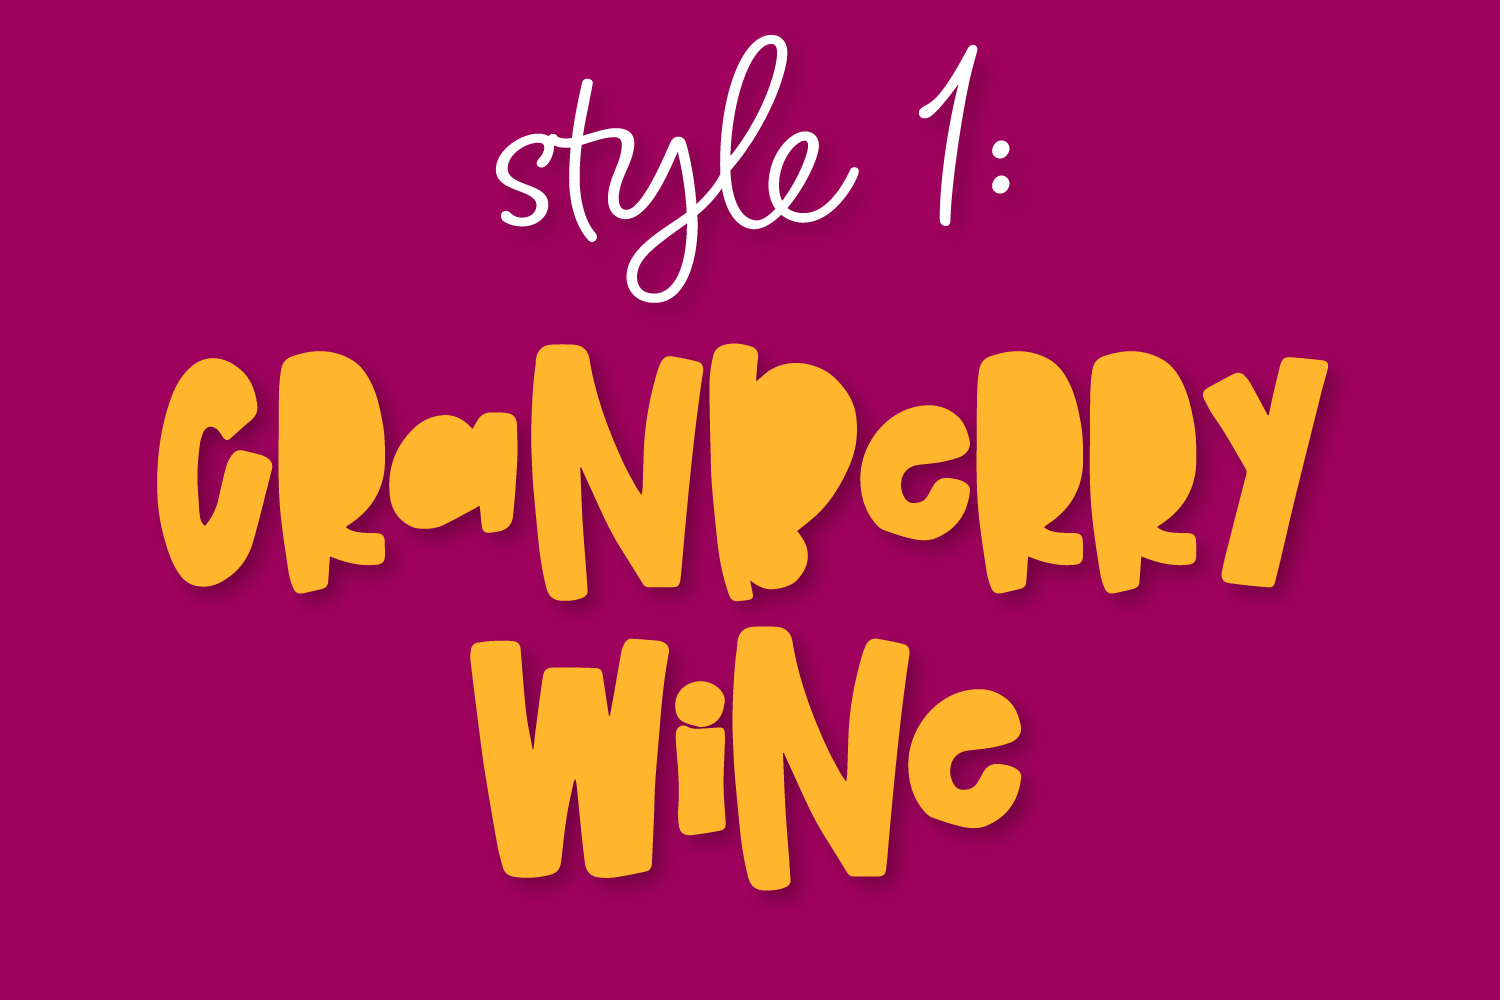 Cranberry Wine - A Striped Font Family of 6 New Fonts! example image 2